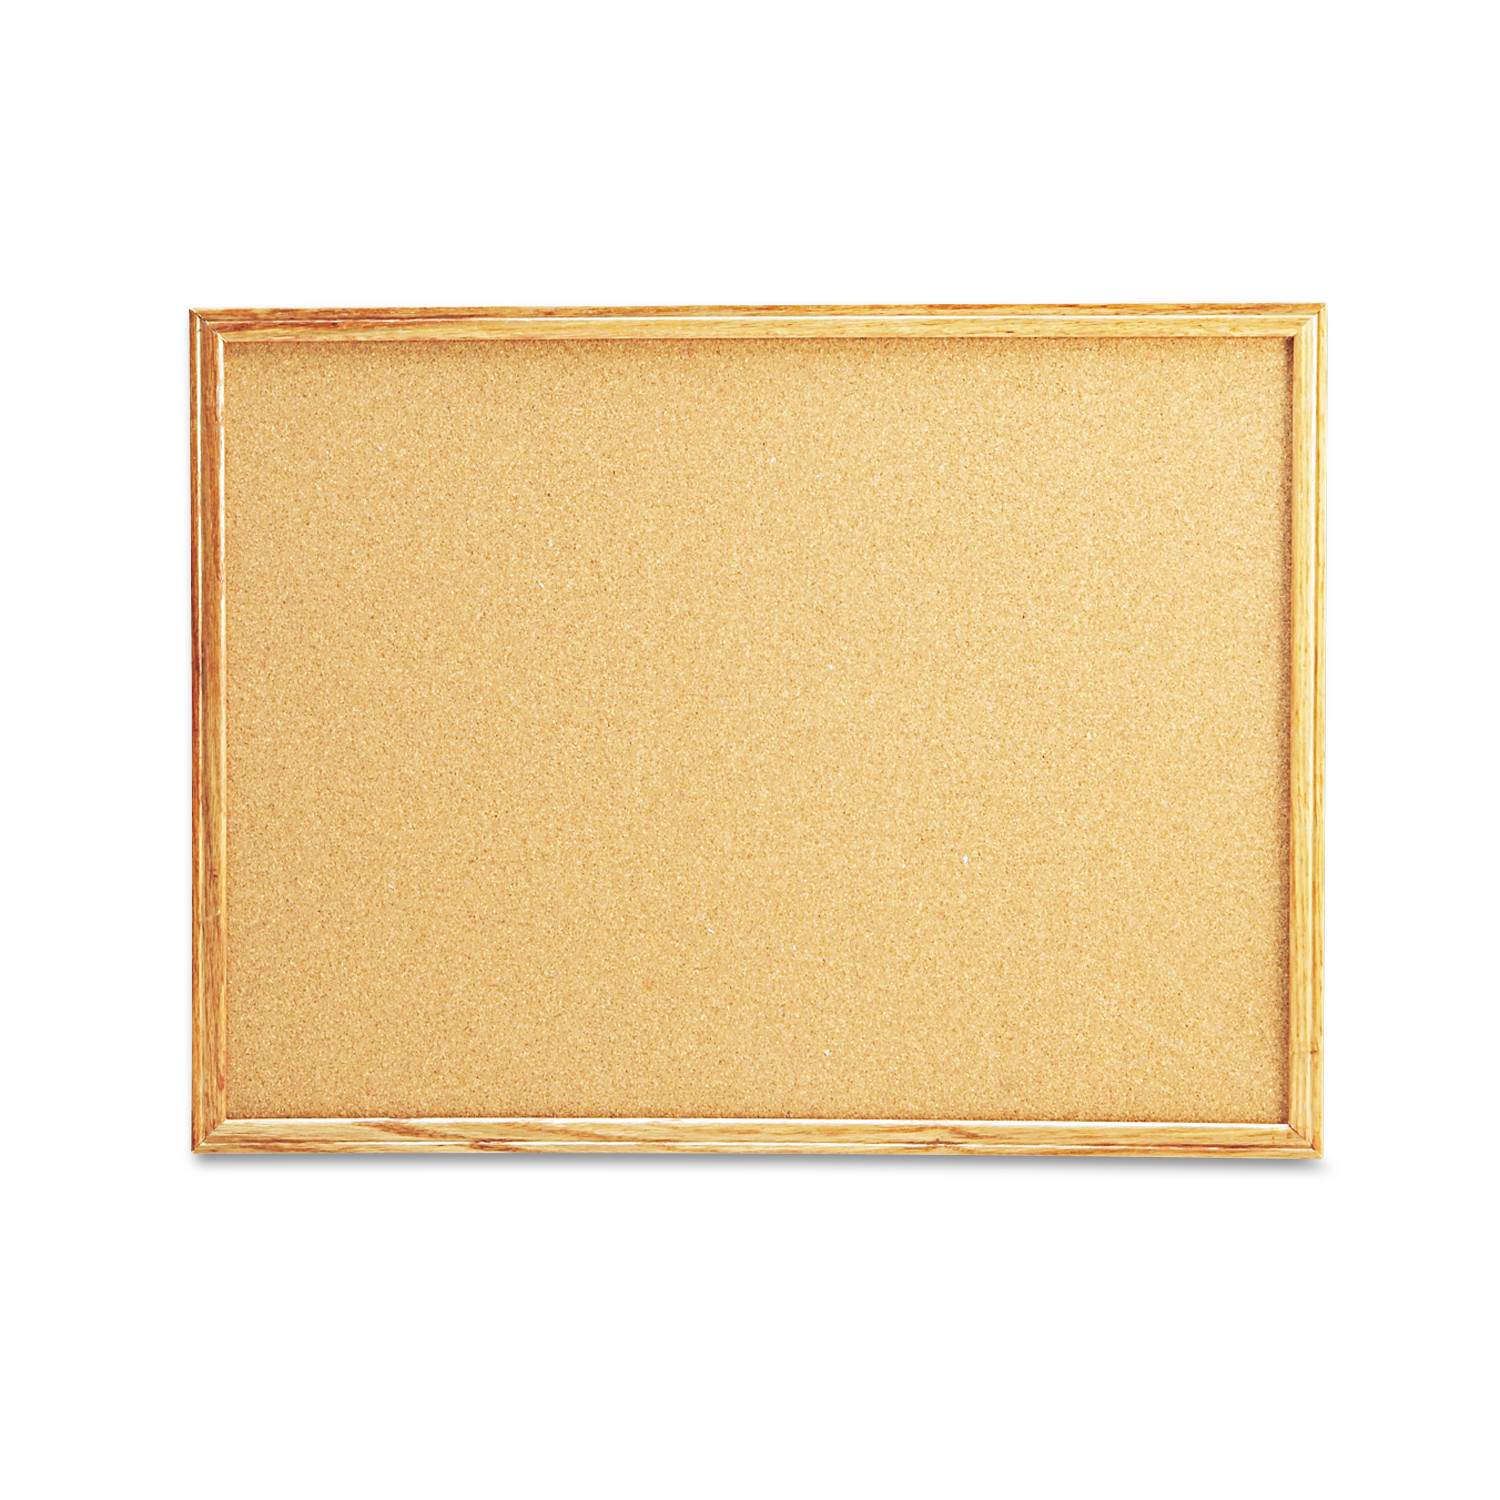 Universal Cork Board with Oak Style Frame, 24 x 18, Natural, Oak-Finished Frame